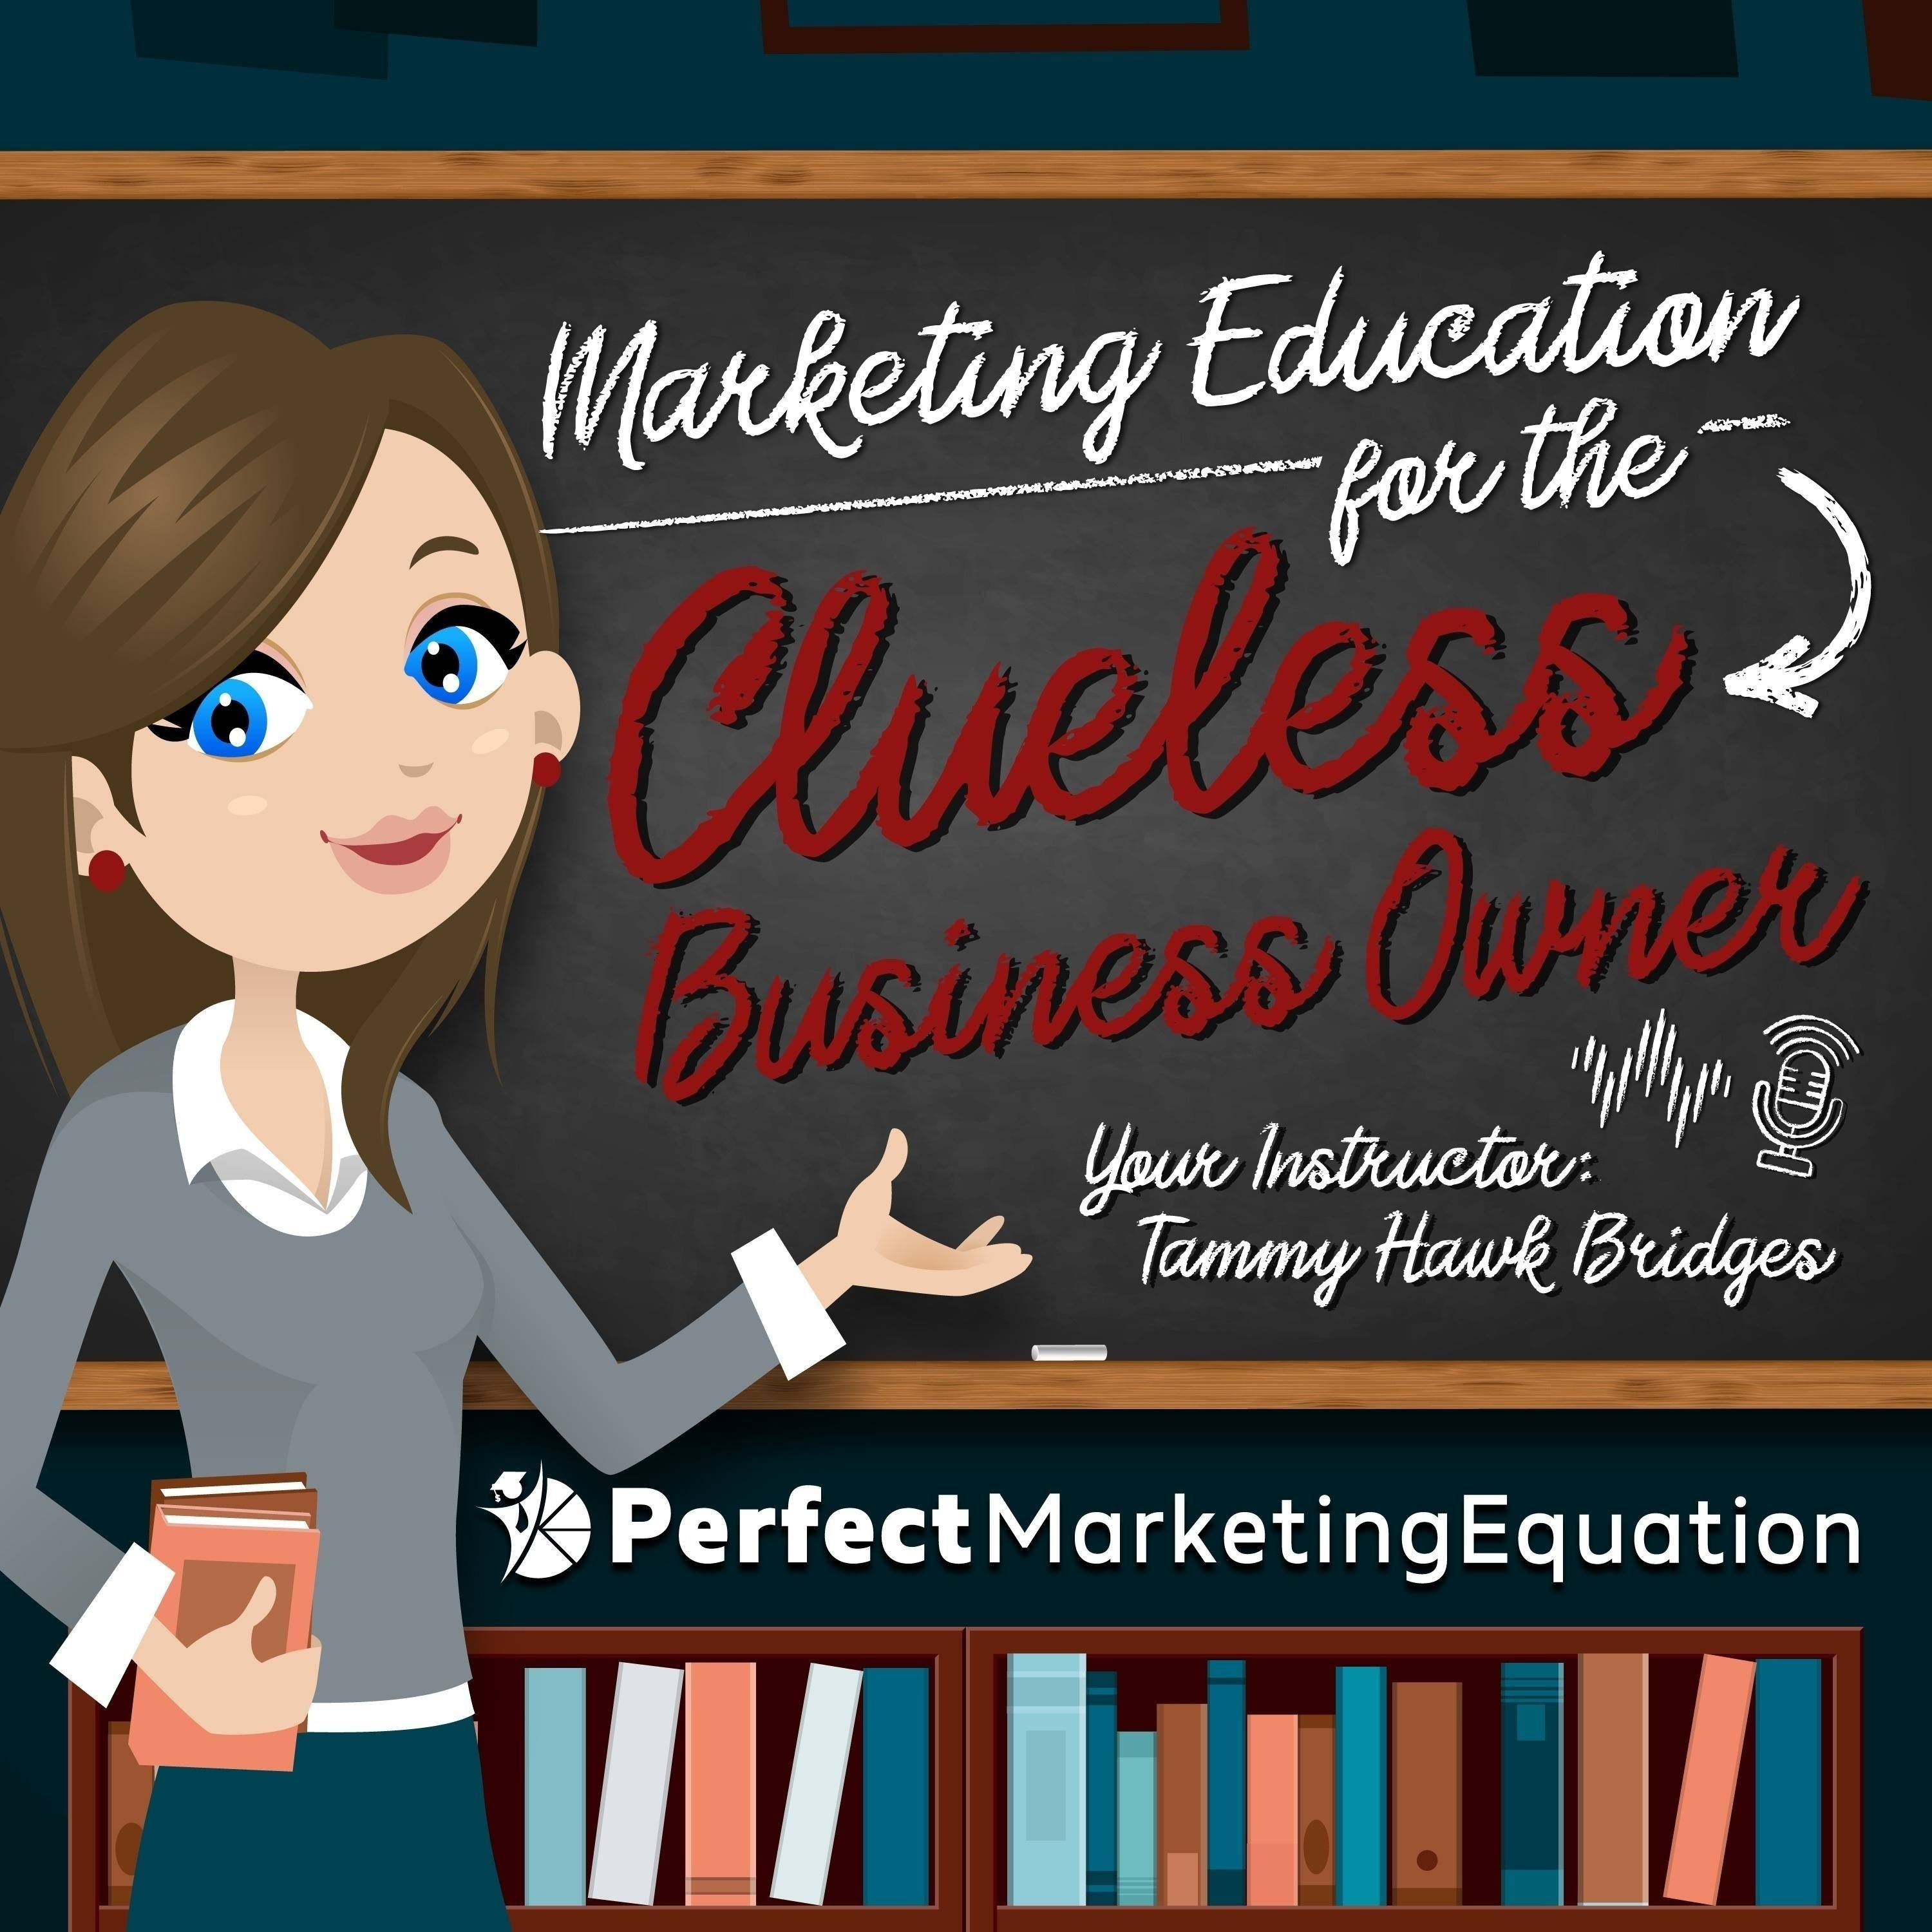 © 2021 Marketing Education for the Clueless Business Owner